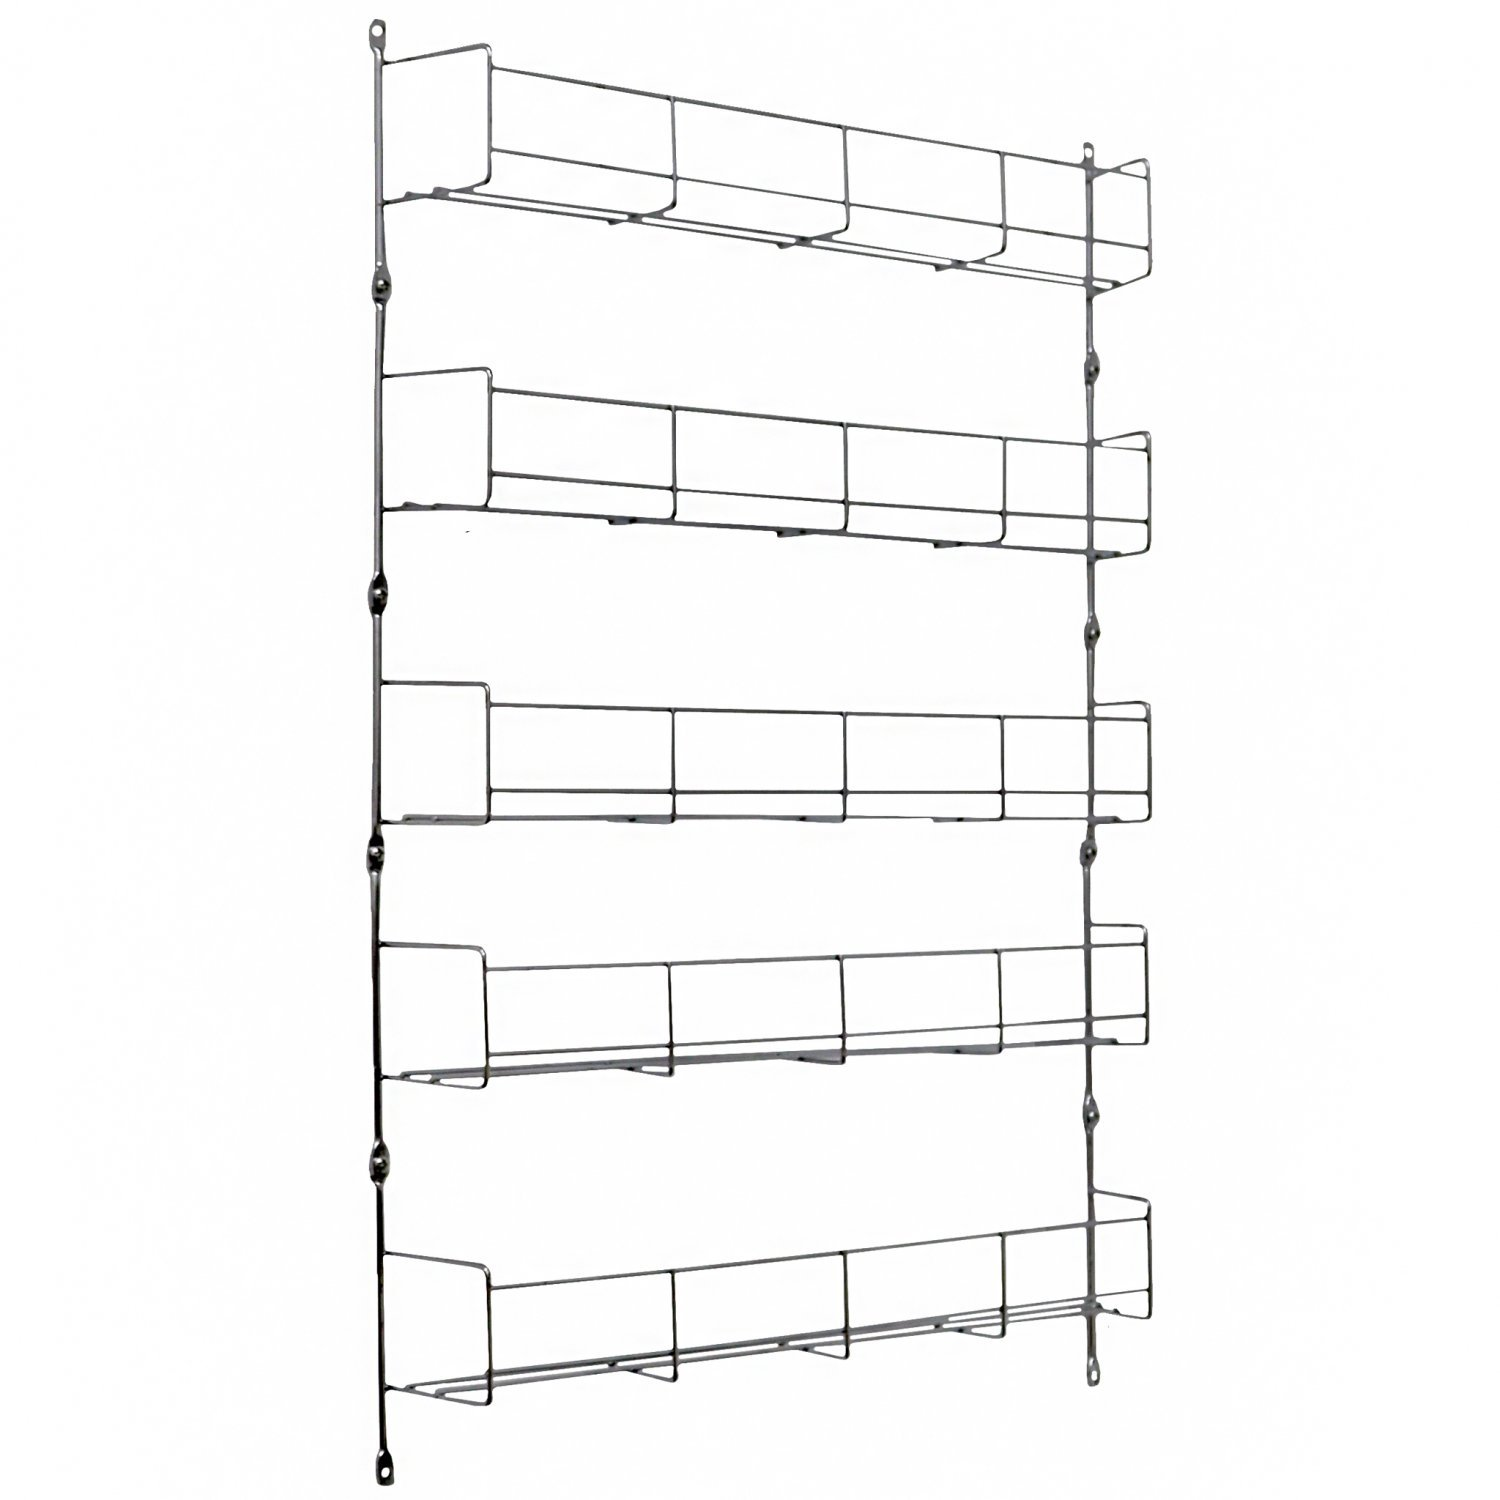 5 Tier 40 Jar Spice Herb Rack Kitchen Storage Wall Mountable 13 99 Oypla Stocking The Very Best In Toys Electrical Furniture Homeware Garden Gifts And Much More